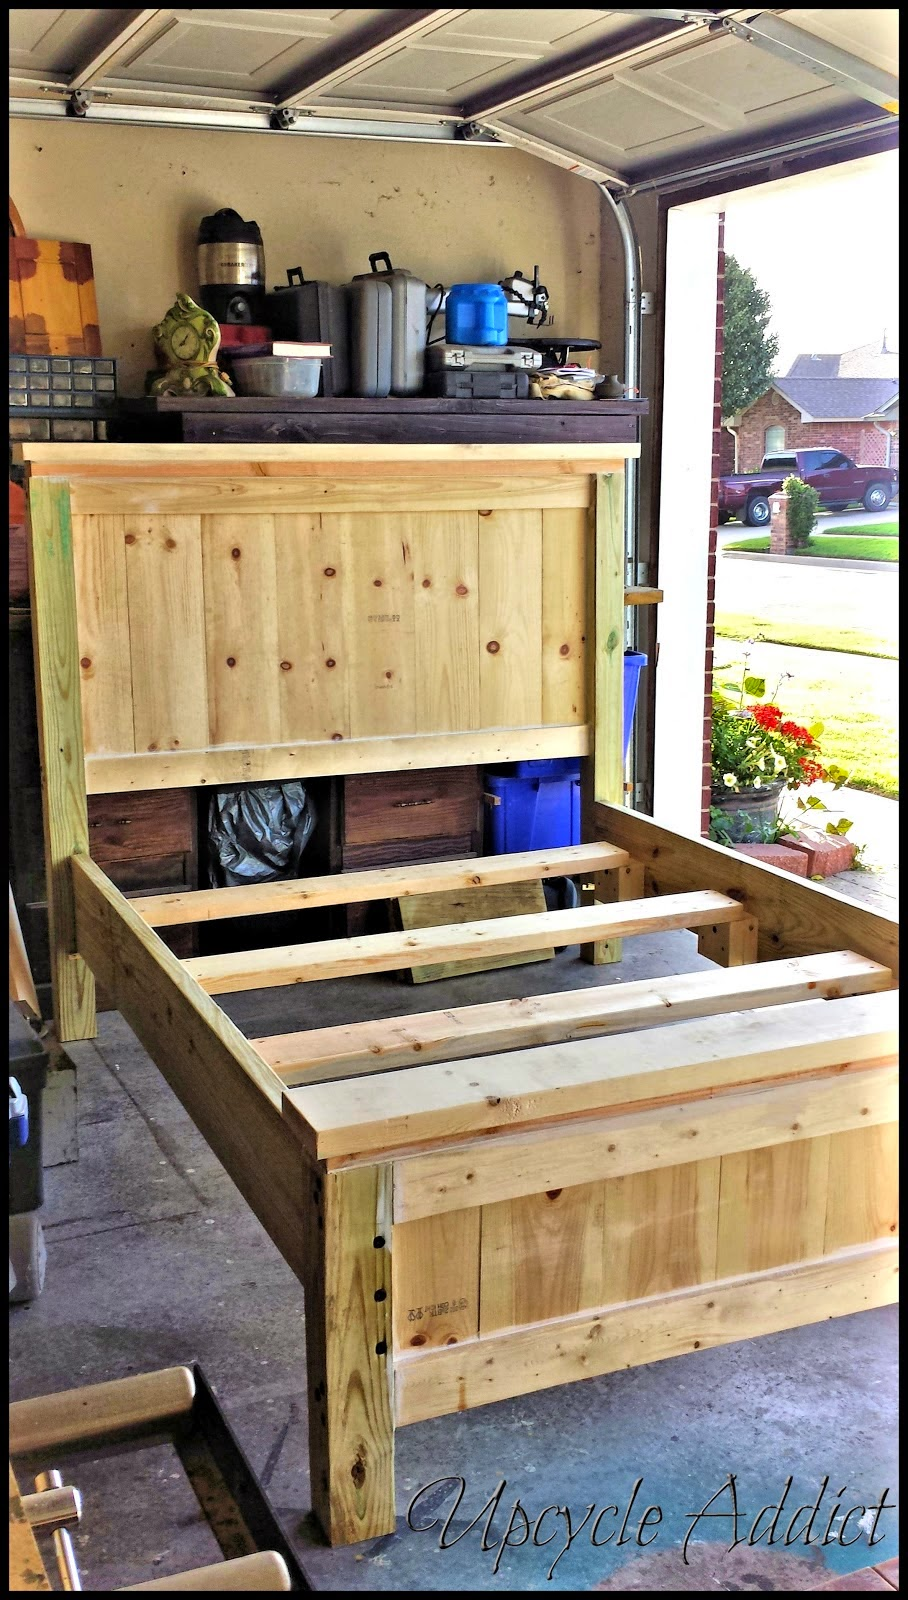 http://www.upcycleaddict.com/2014/07/i-built-my-son-bed-oh-yeah.html